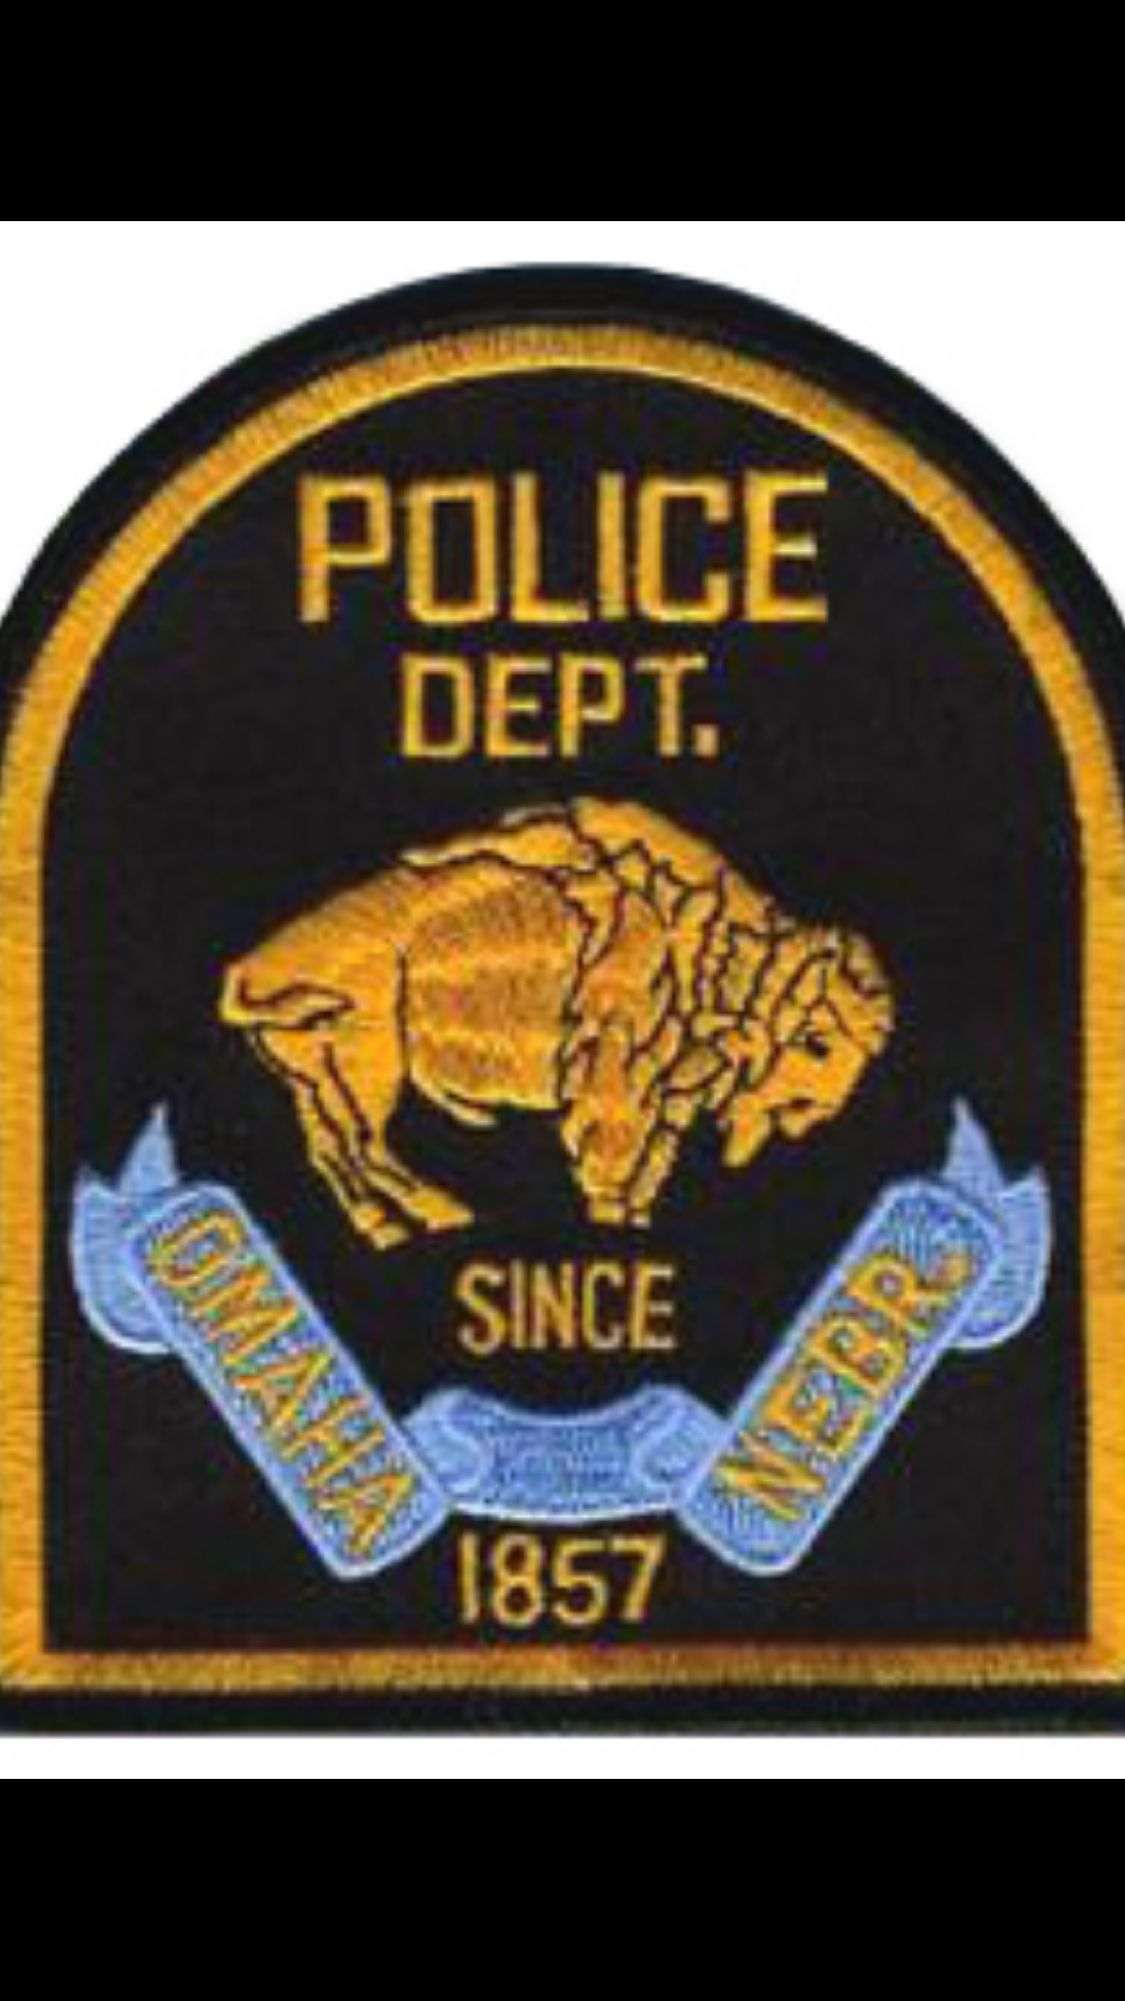 Pin by JoinOPD OPD Backgrounds Unit on Buffalo Badge | Omaha